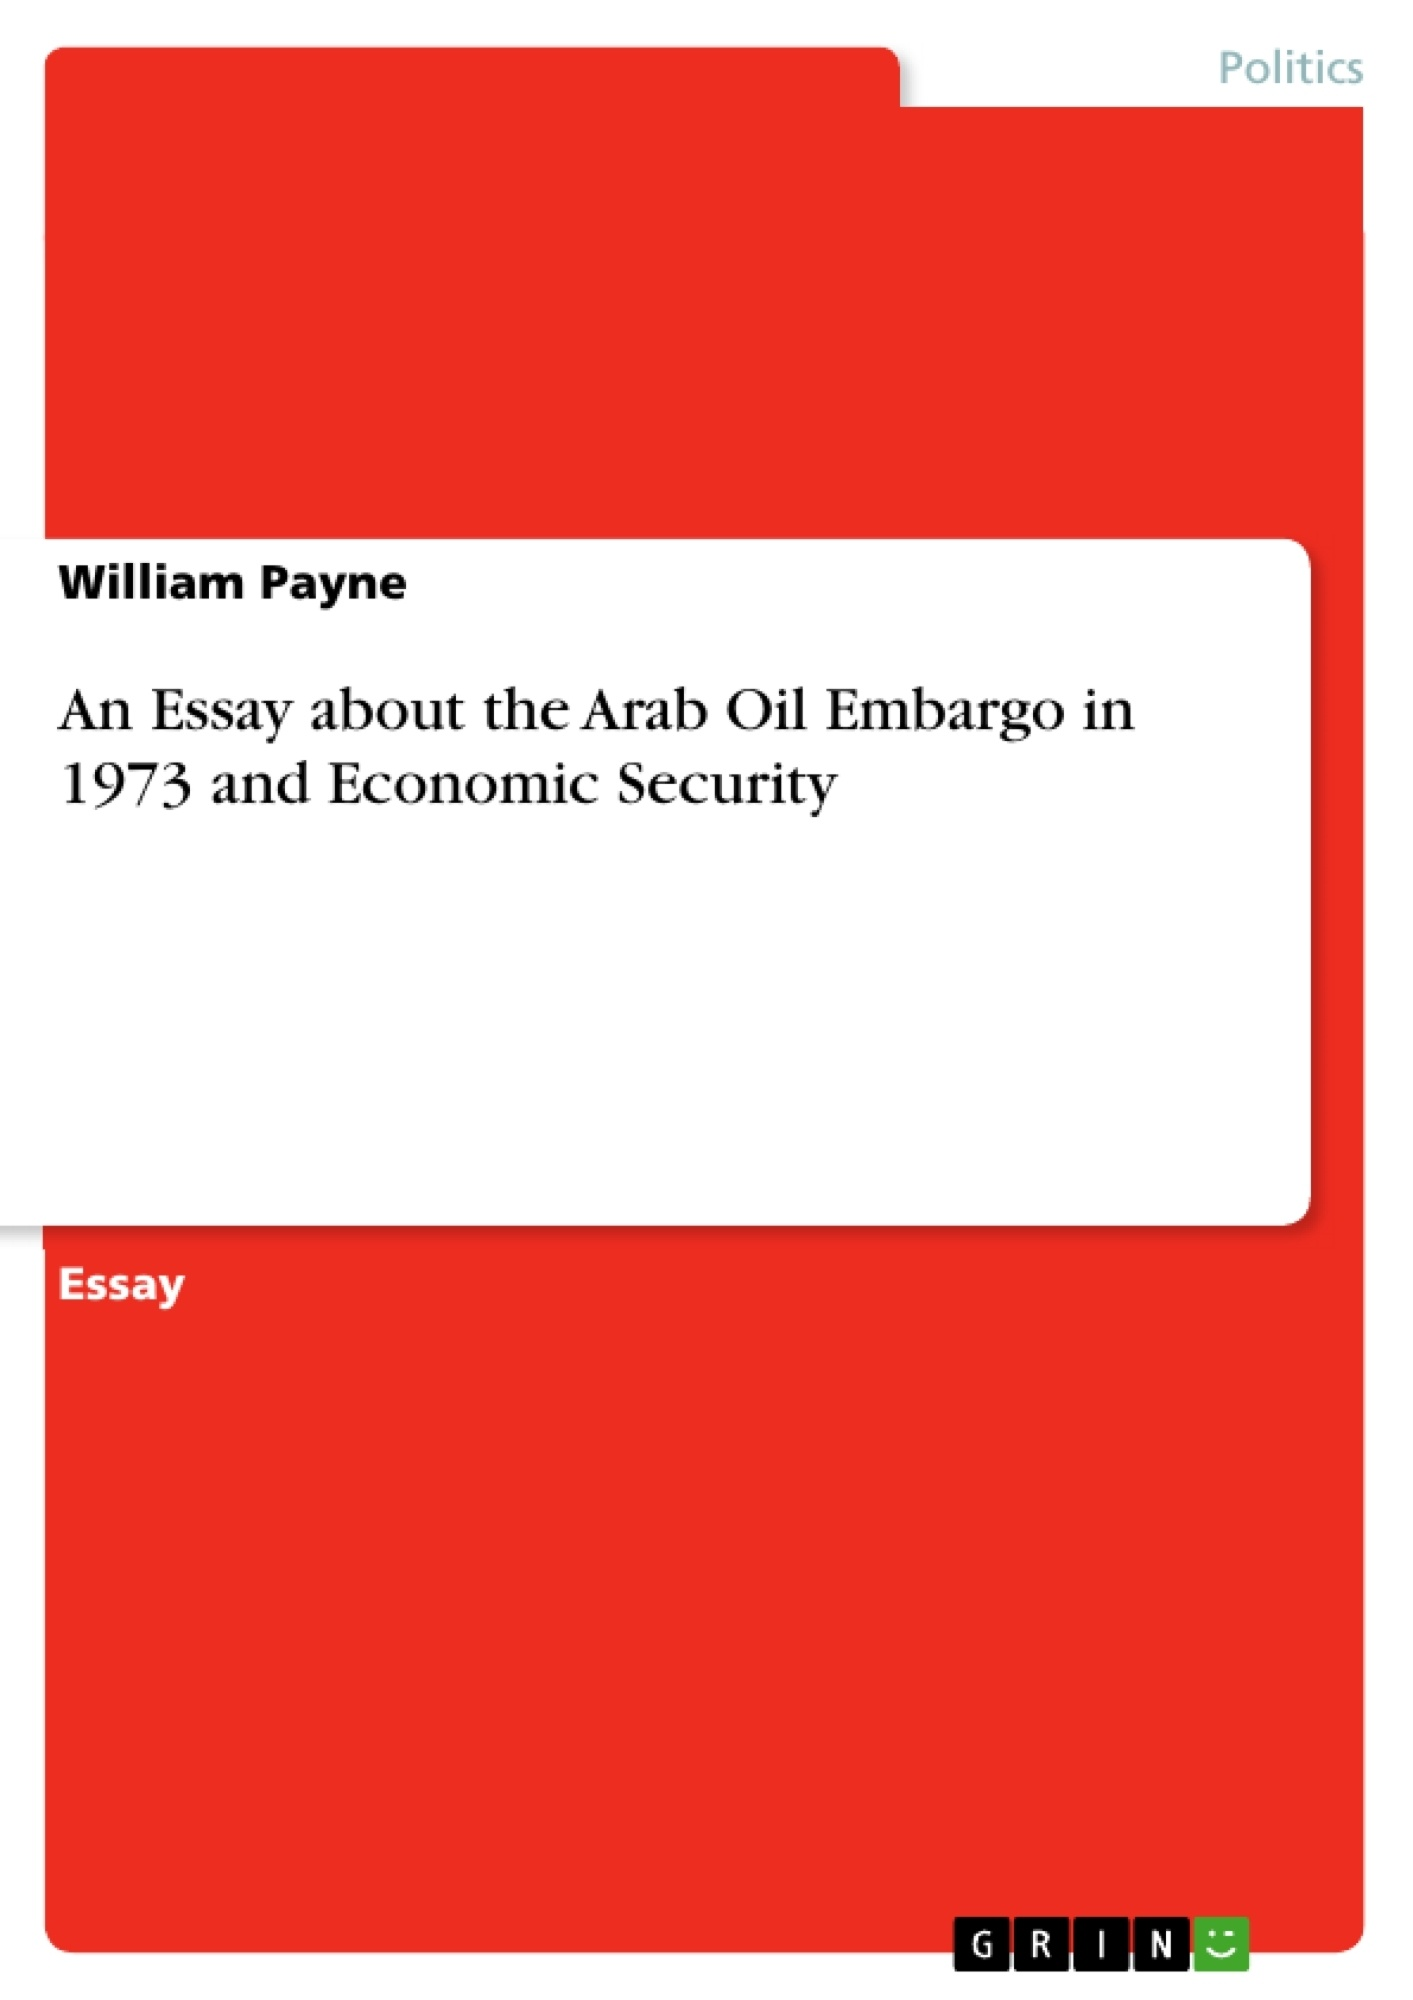 Title: An Essay about the Arab Oil Embargo in 1973 and Economic Security